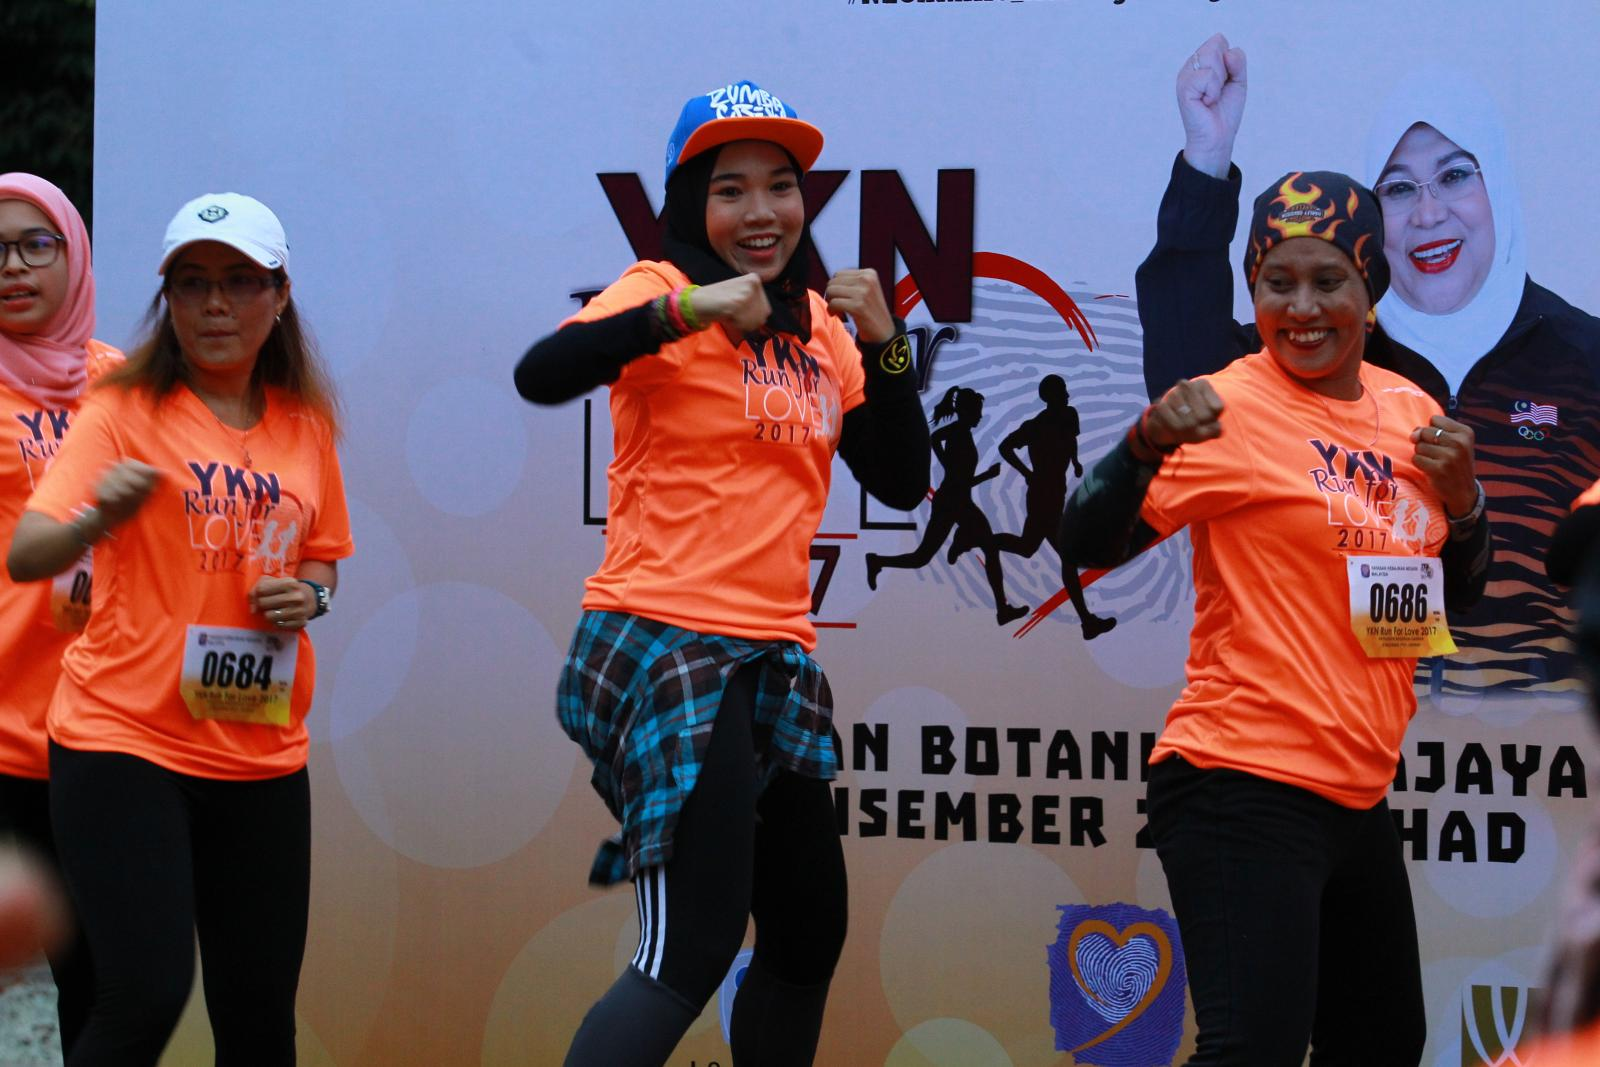 Run For Love 2017 YKN di Taman Botani , Putrajaya